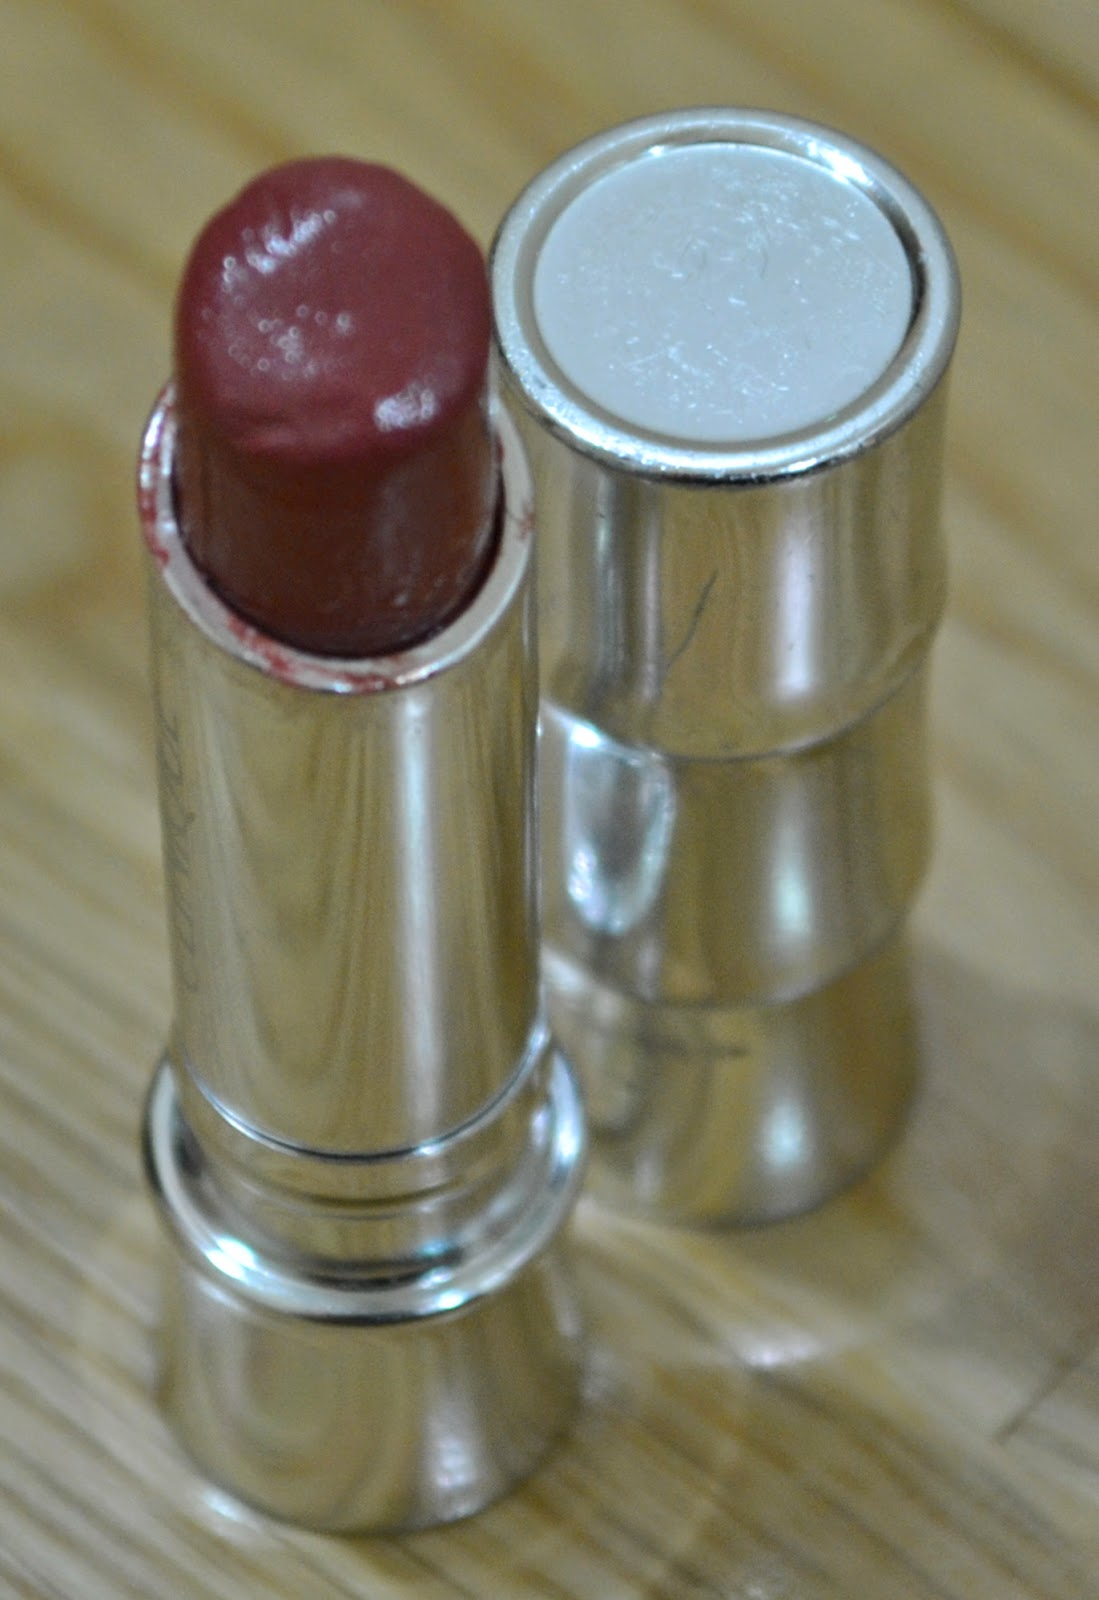 Clinique Butter Shine Lipstick in Pink Toffee